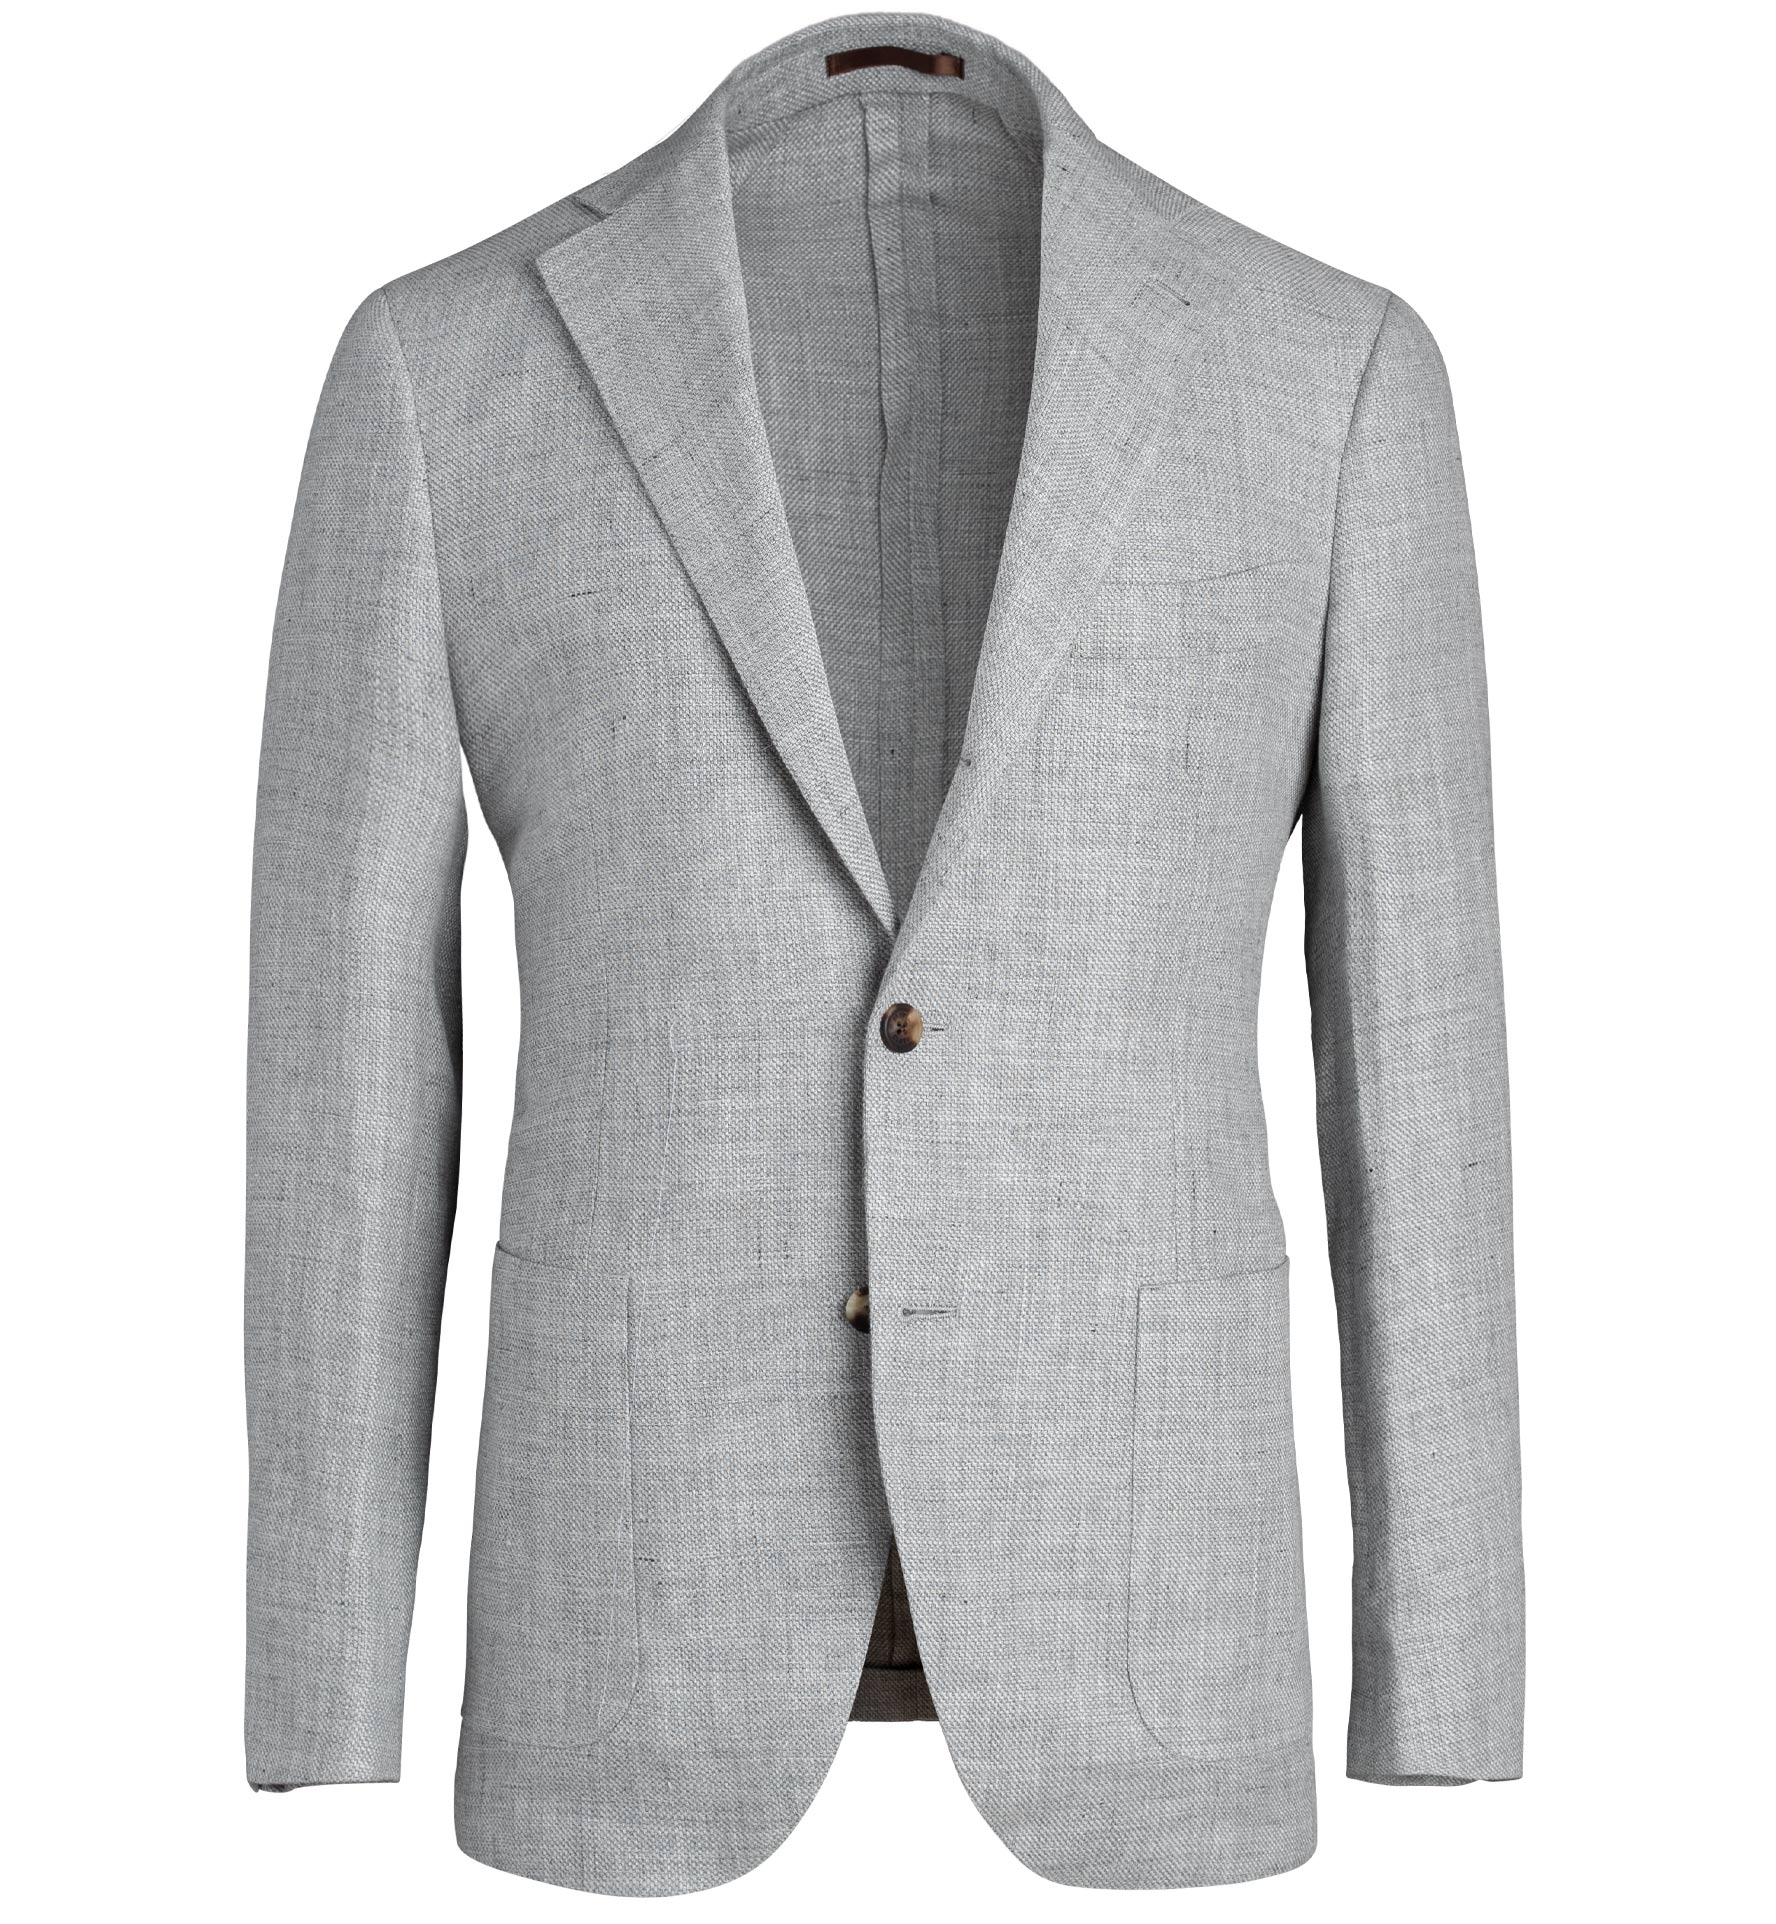 Zoom Image of Bedford Light Grey Wool and Linen Basketweave Jacket